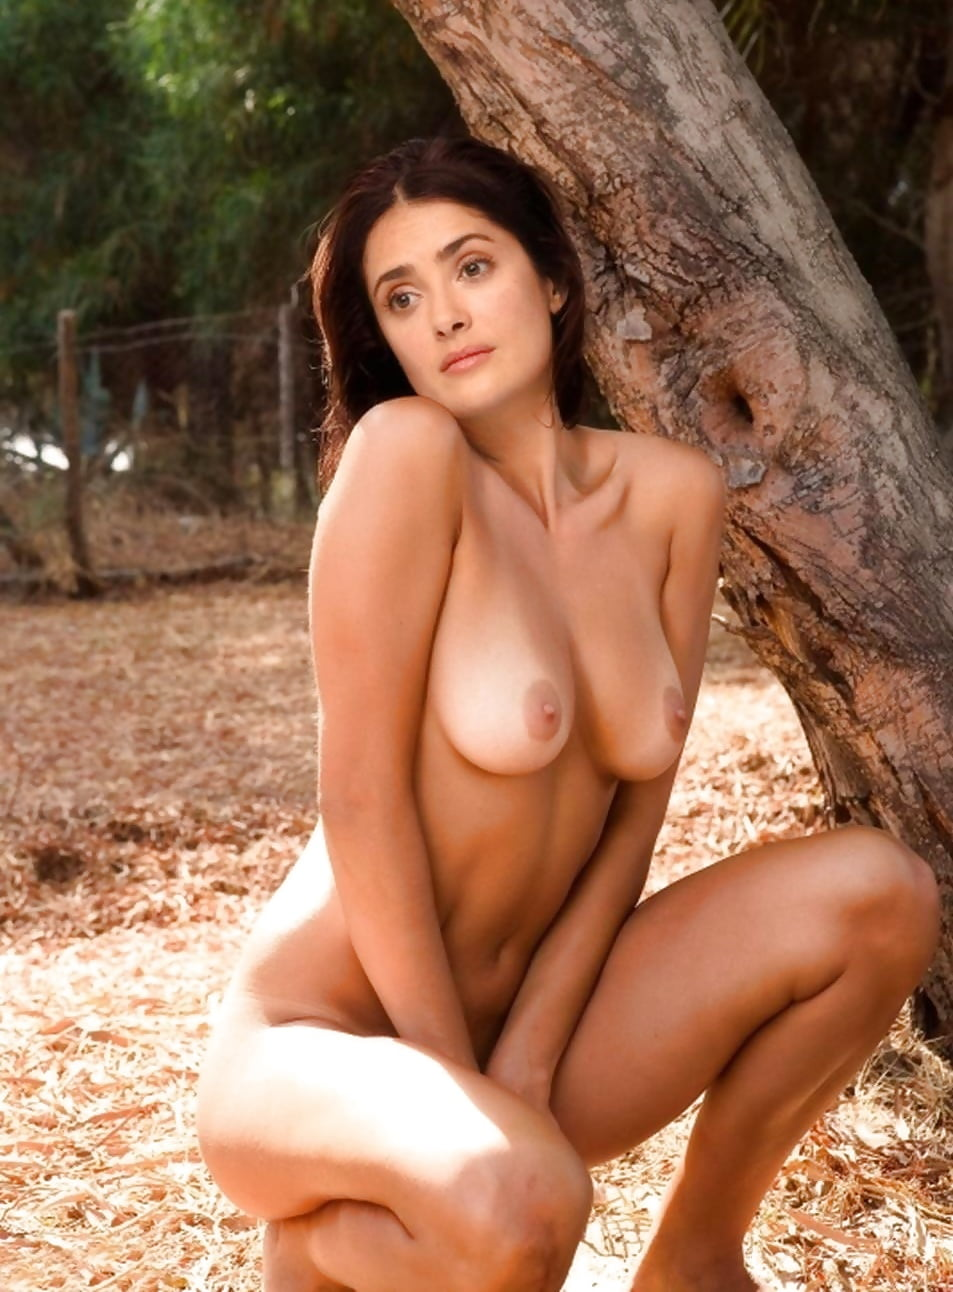 Salma hayek pictures naked — 2